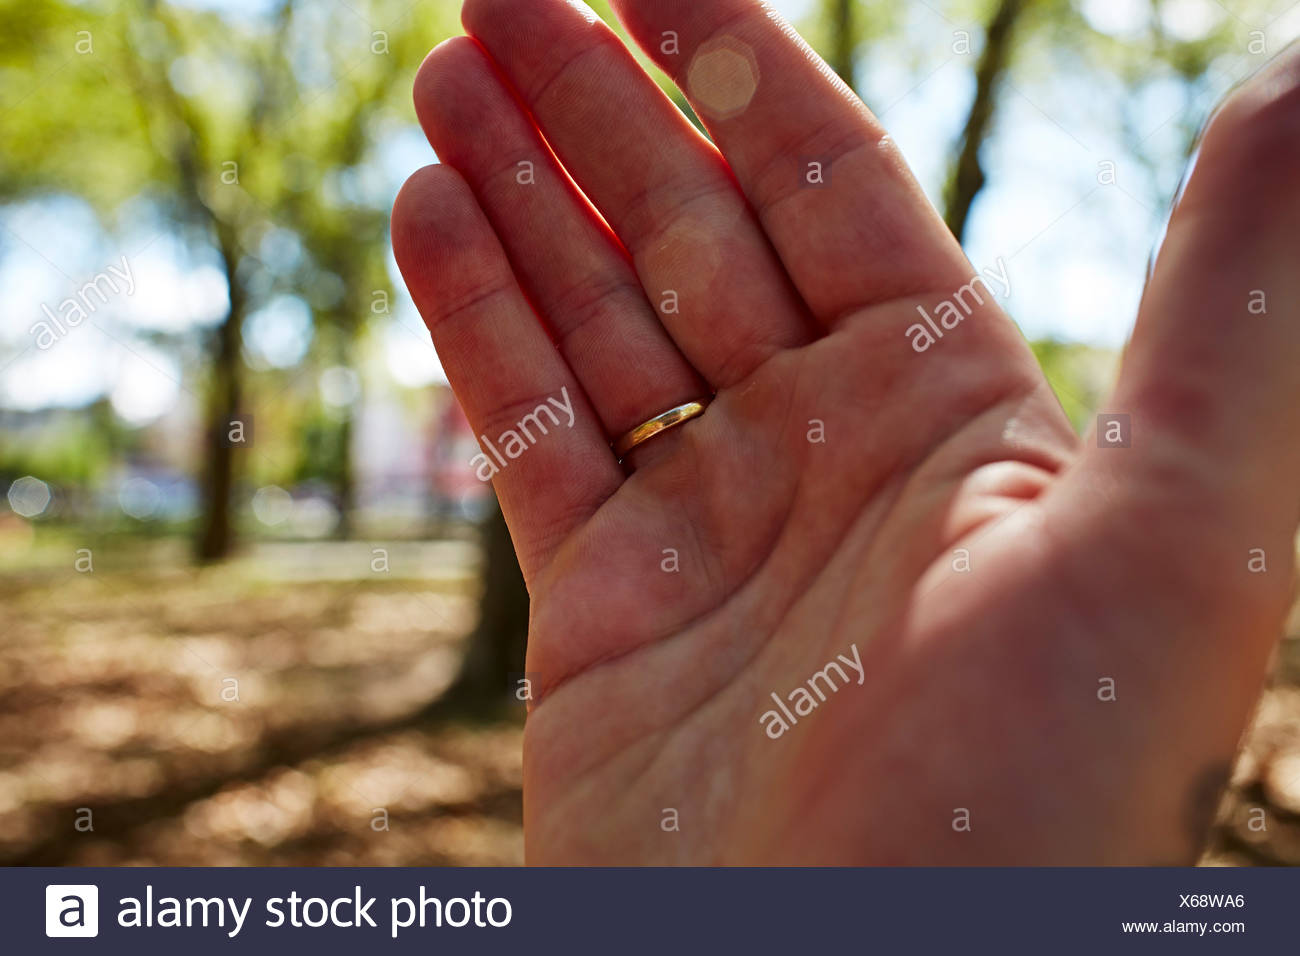 Man's hand with wedding ring, close up - Stock Image